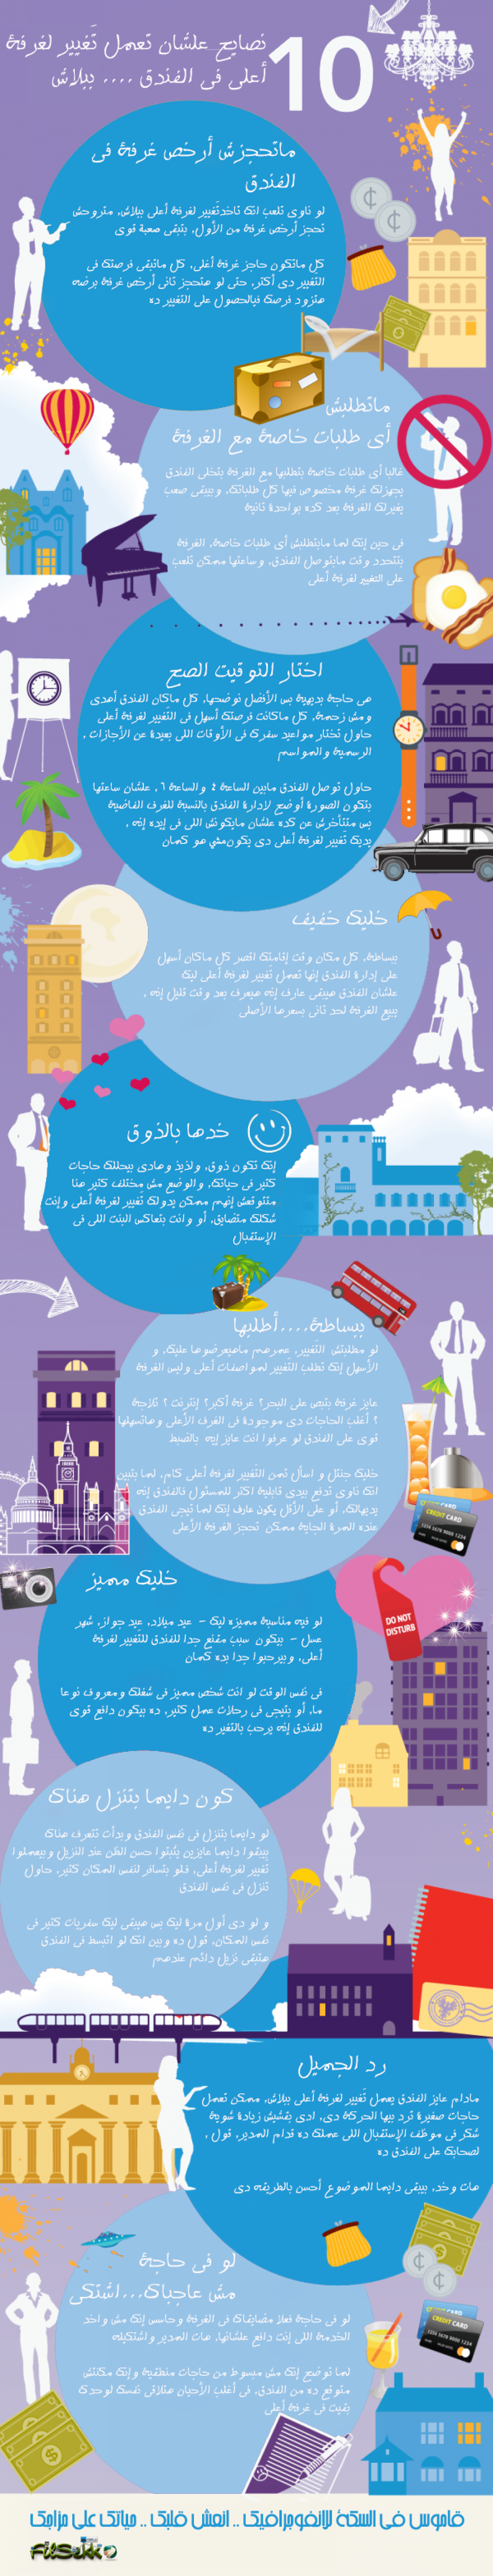 [Arabic] 10 Advices to Get a Free Hotel Room Upgrade ! Infographic